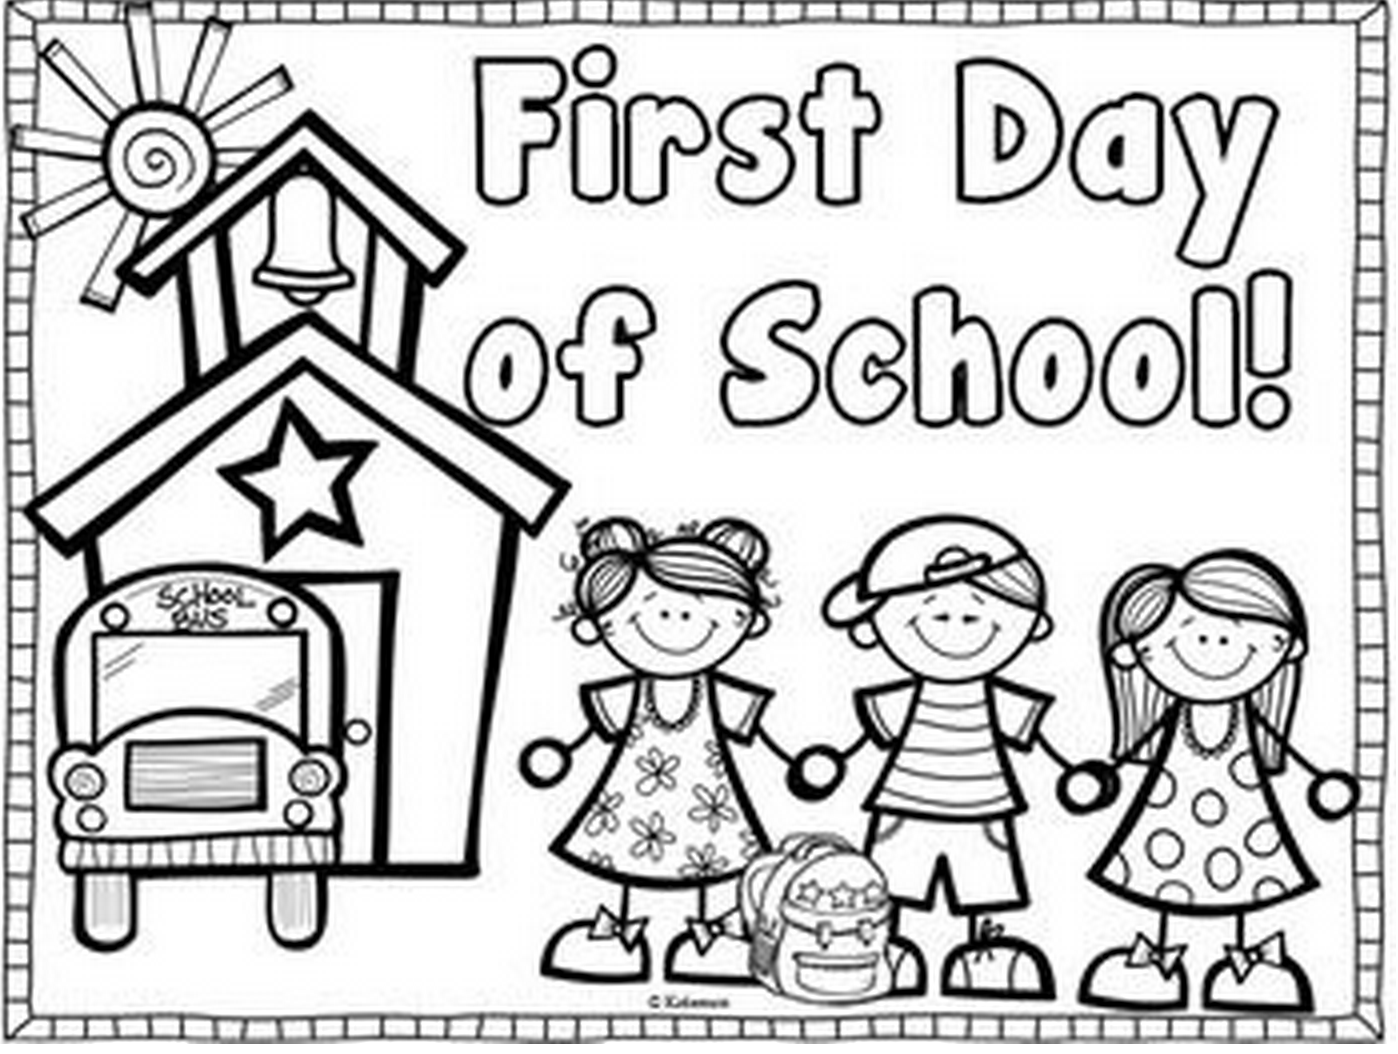 school coloring sheet - Ceri.comunicaasl.com